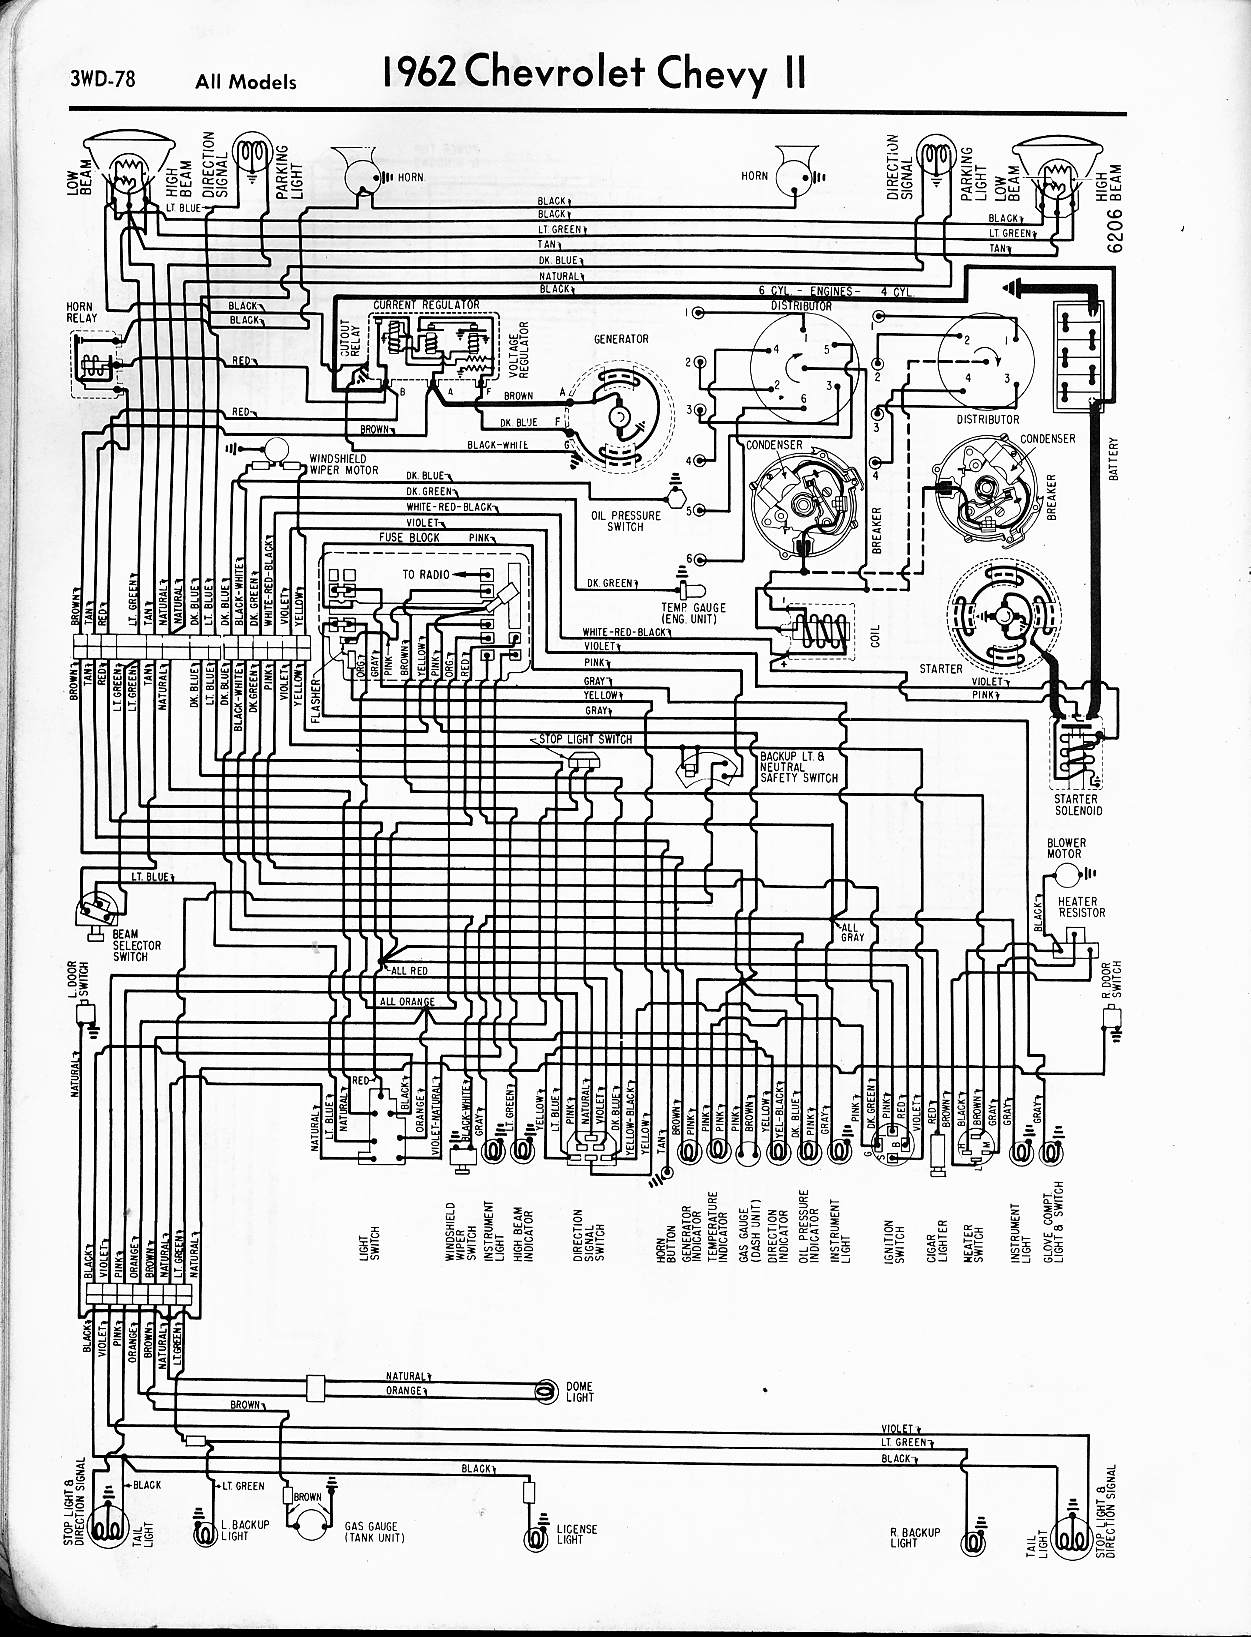 MWireChev62_3WD 078 1963 c10 pickup wiring diagram pdf chevy wiring diagrams \u2022 free 67 Chevy 2 Nova at cos-gaming.co